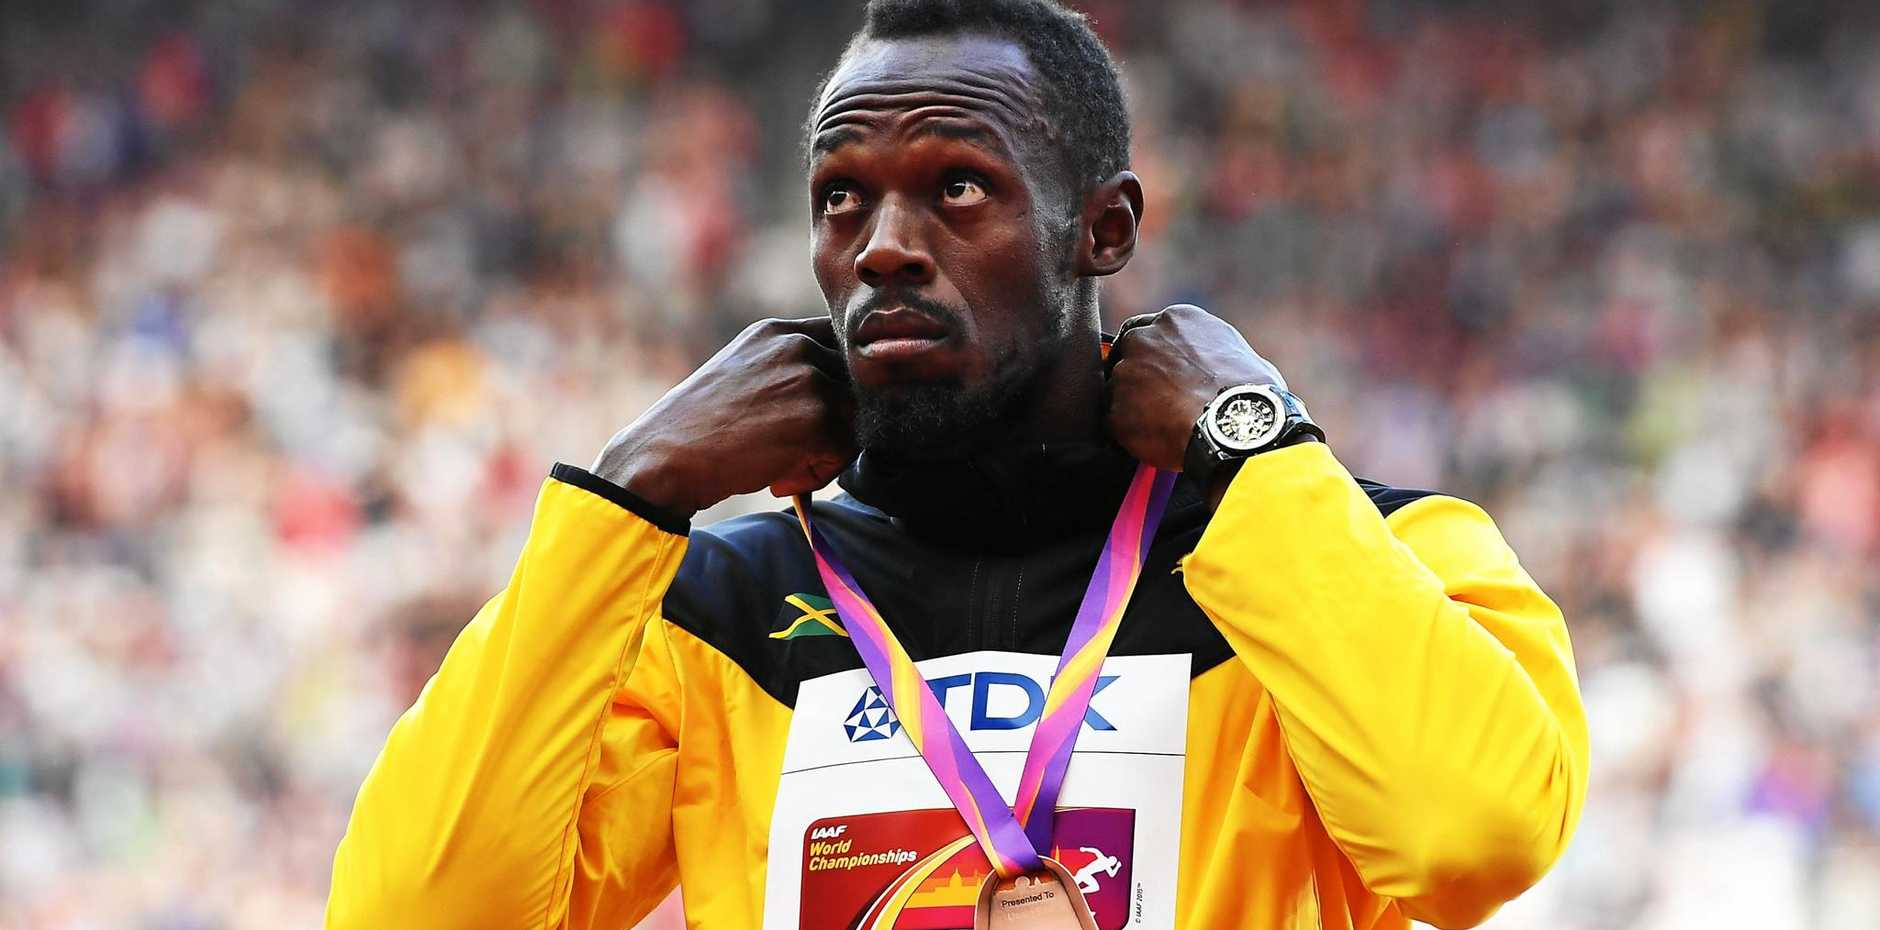 Bolt took offence to one question from a journalist.